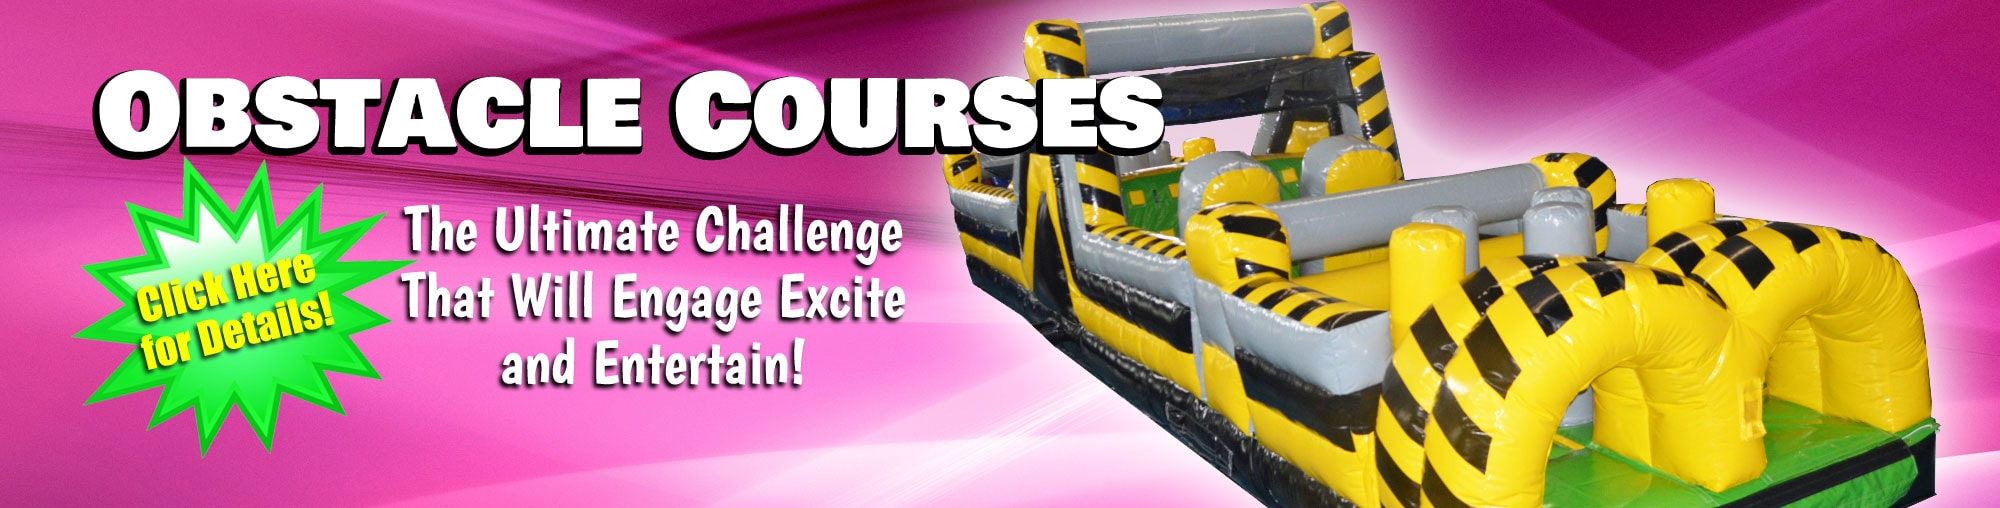 Obstacl Course Rentals